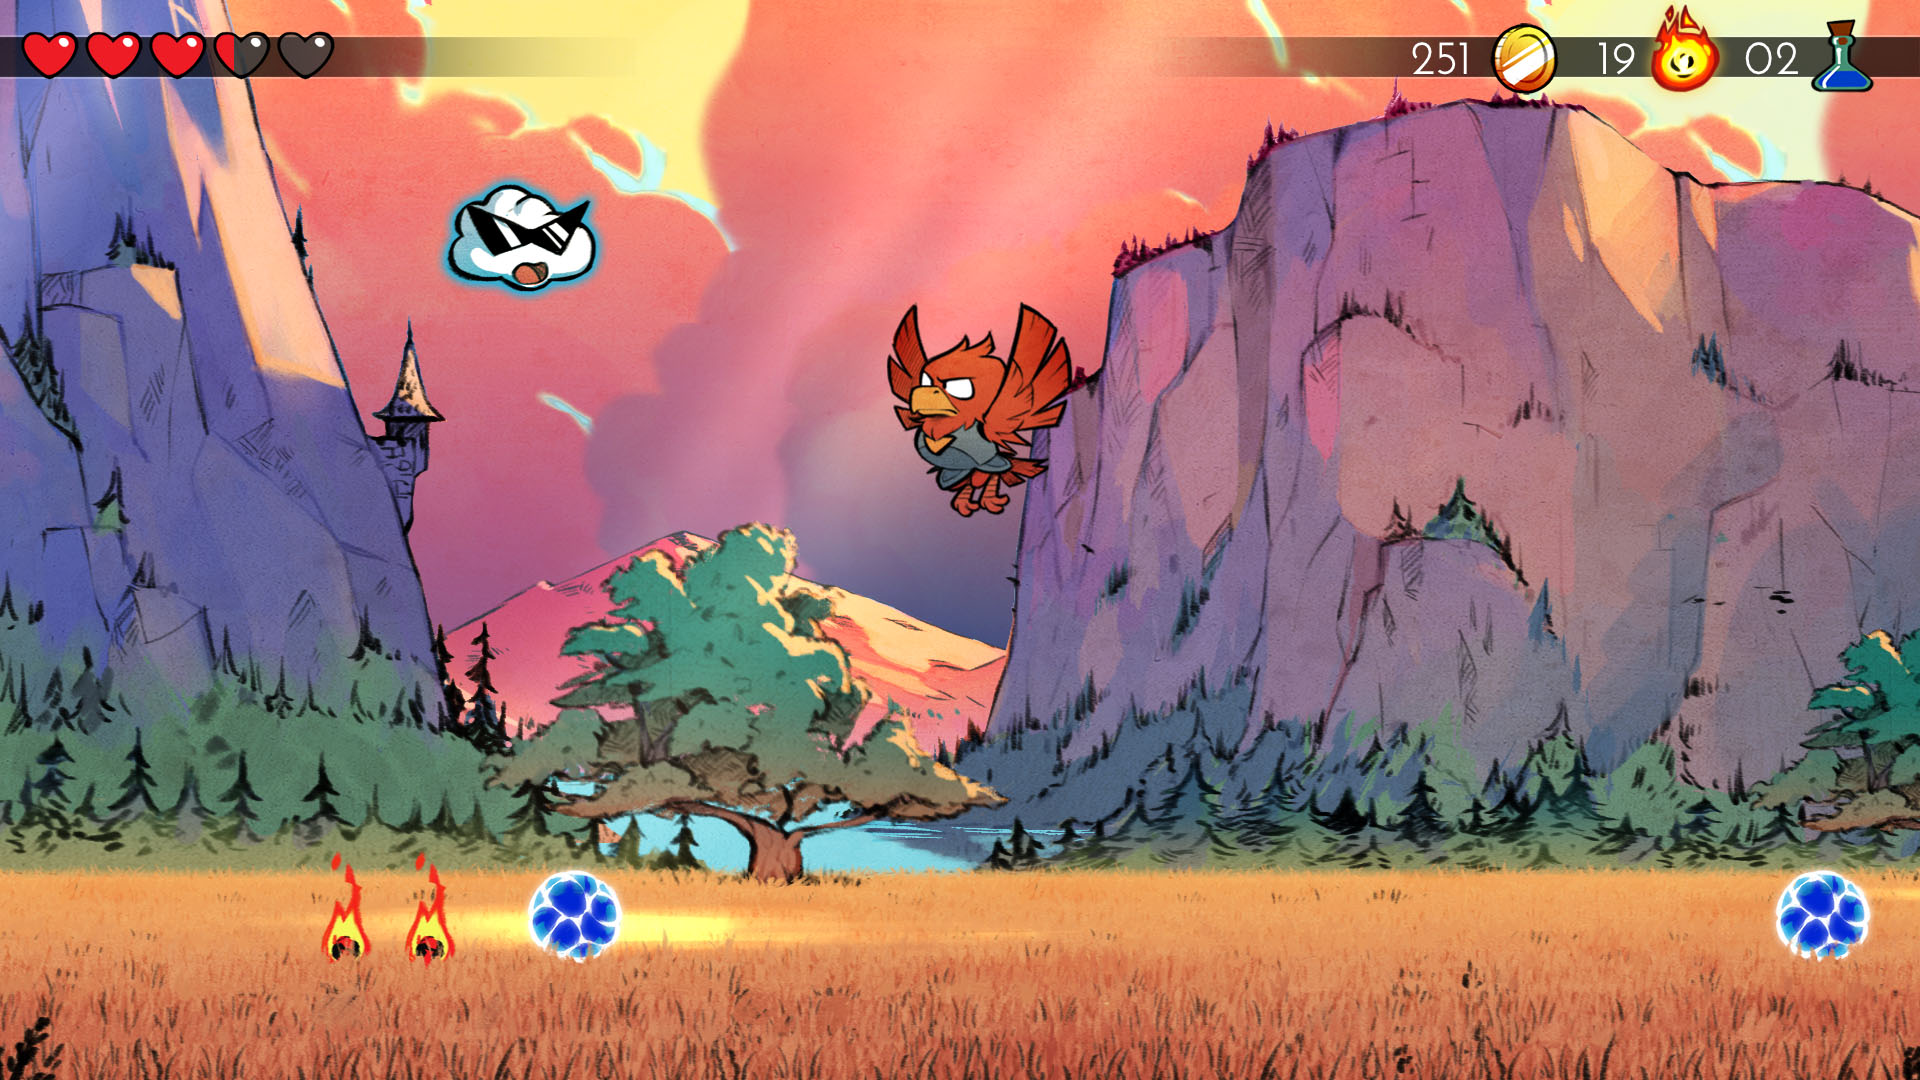 Wonder Boy : The Dragon's Trap released for PS4, XB1 and Nintendo Switch